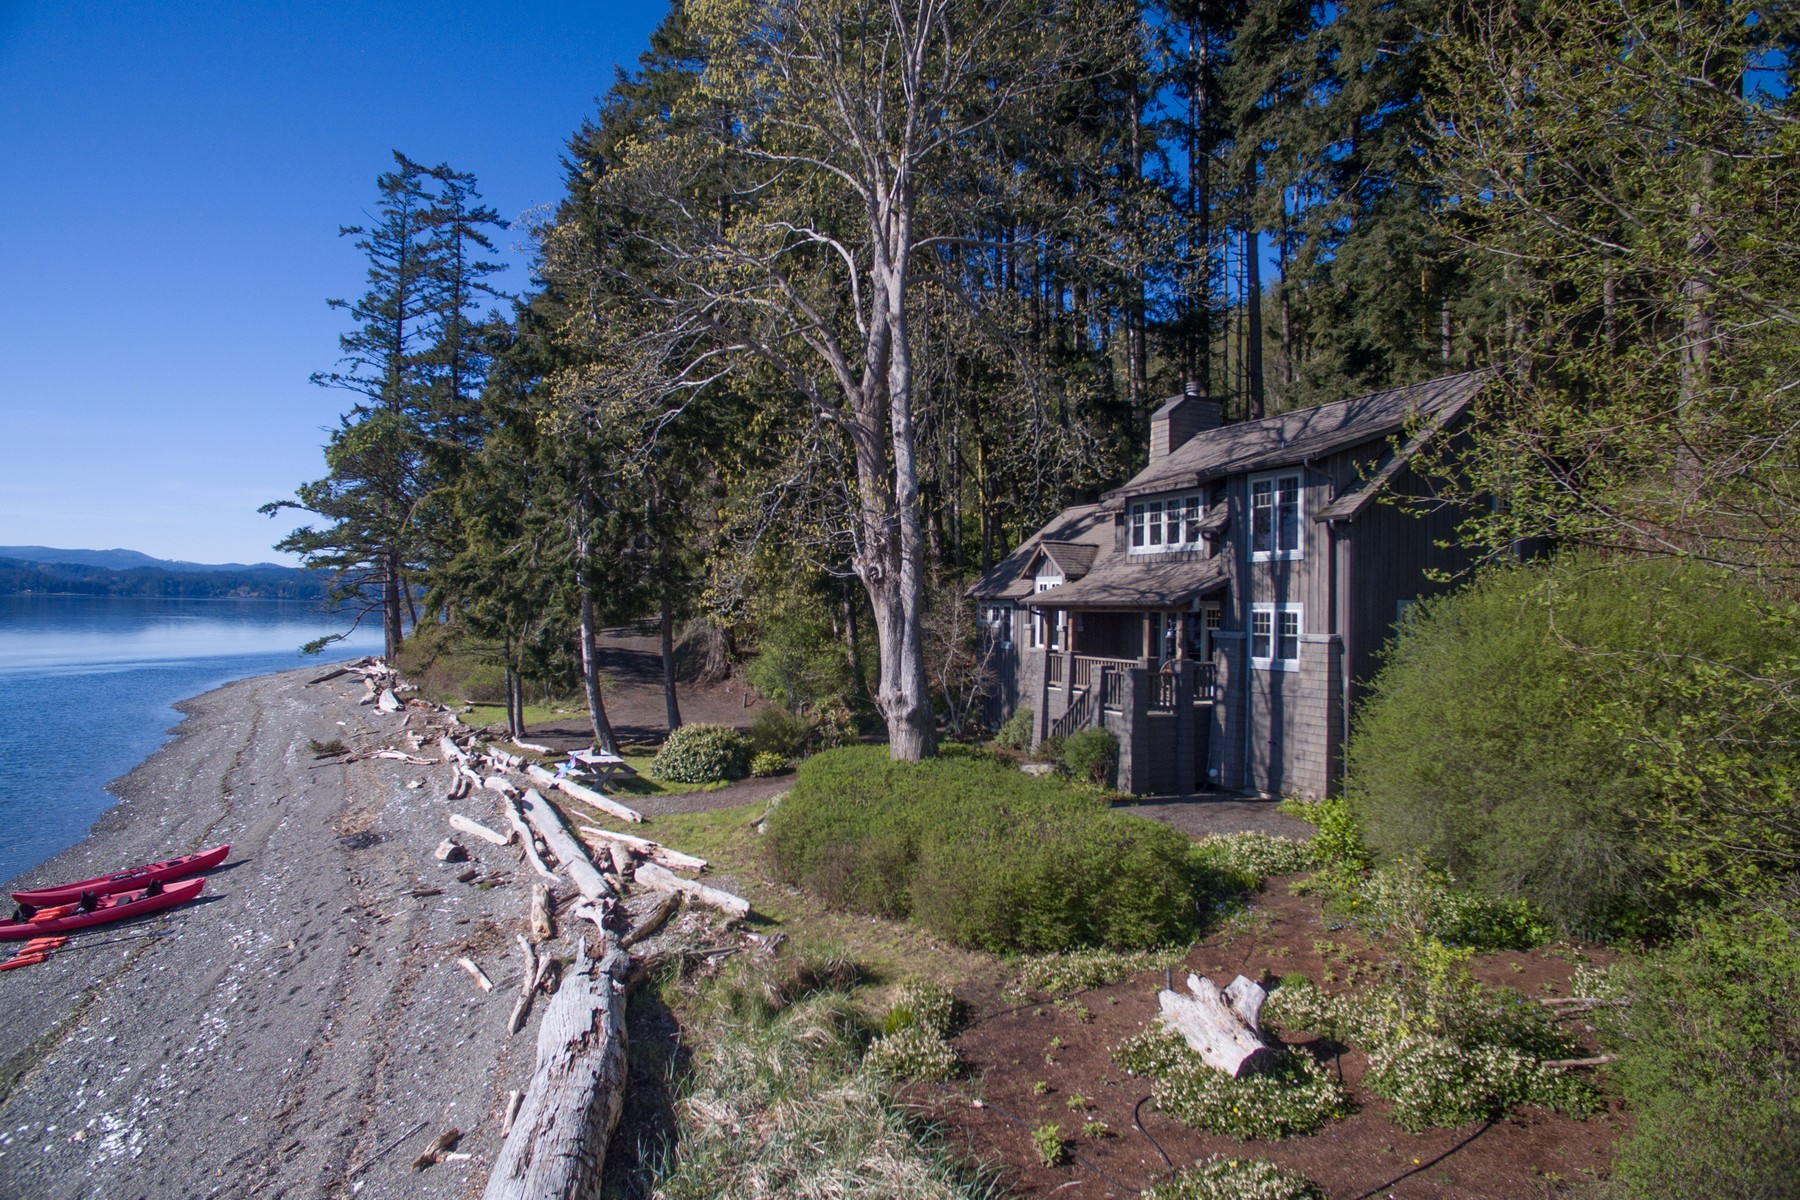 Single Family Home for Sale at Quilcene Cabin 85 Hazel Point CT Quilcene, Washington 98376 United States